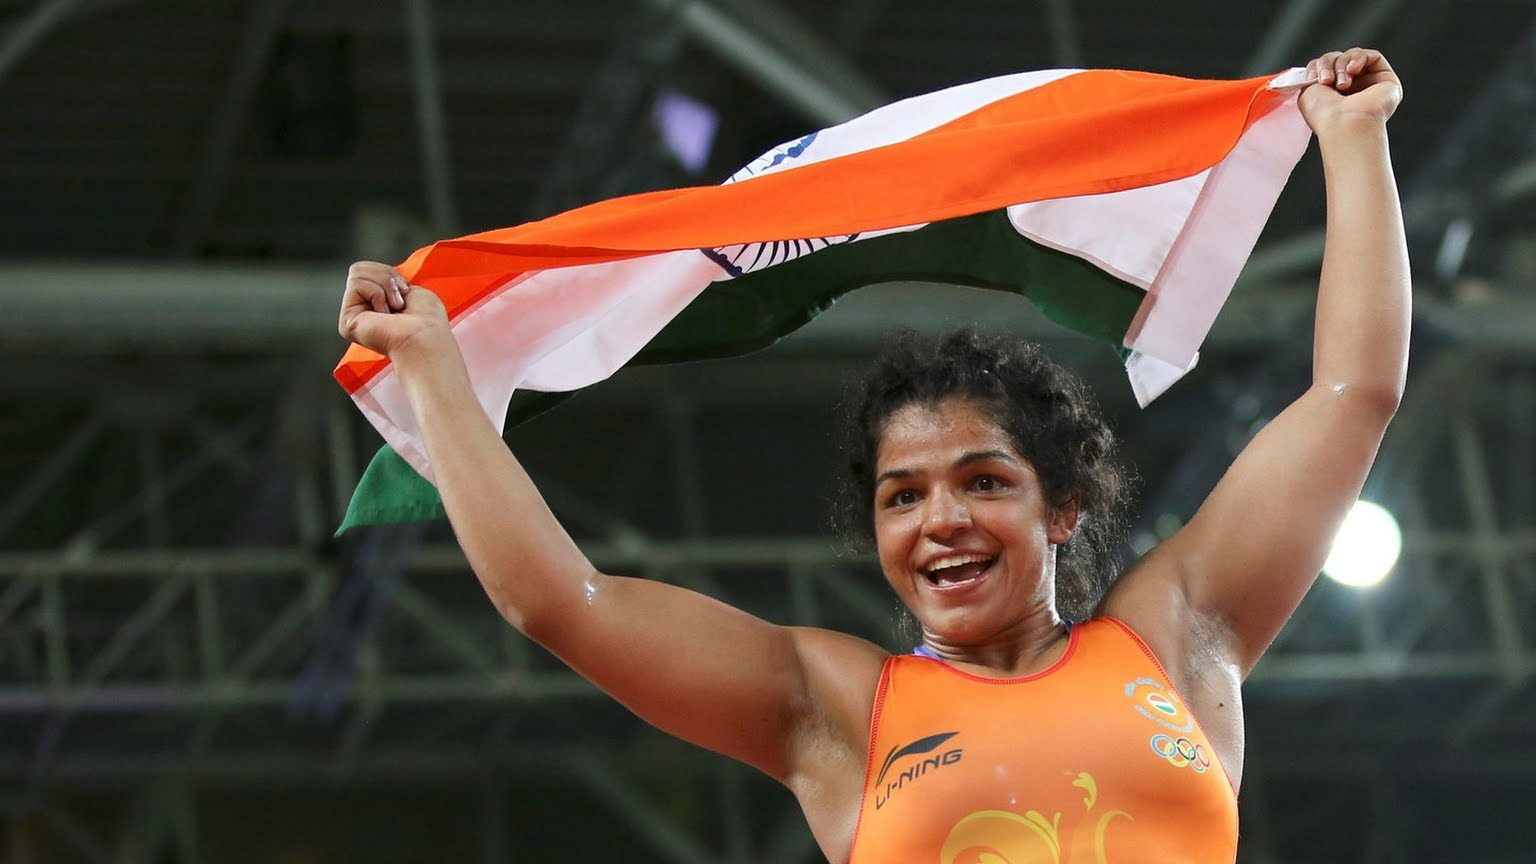 Sakshi Malik - Indian Athlete